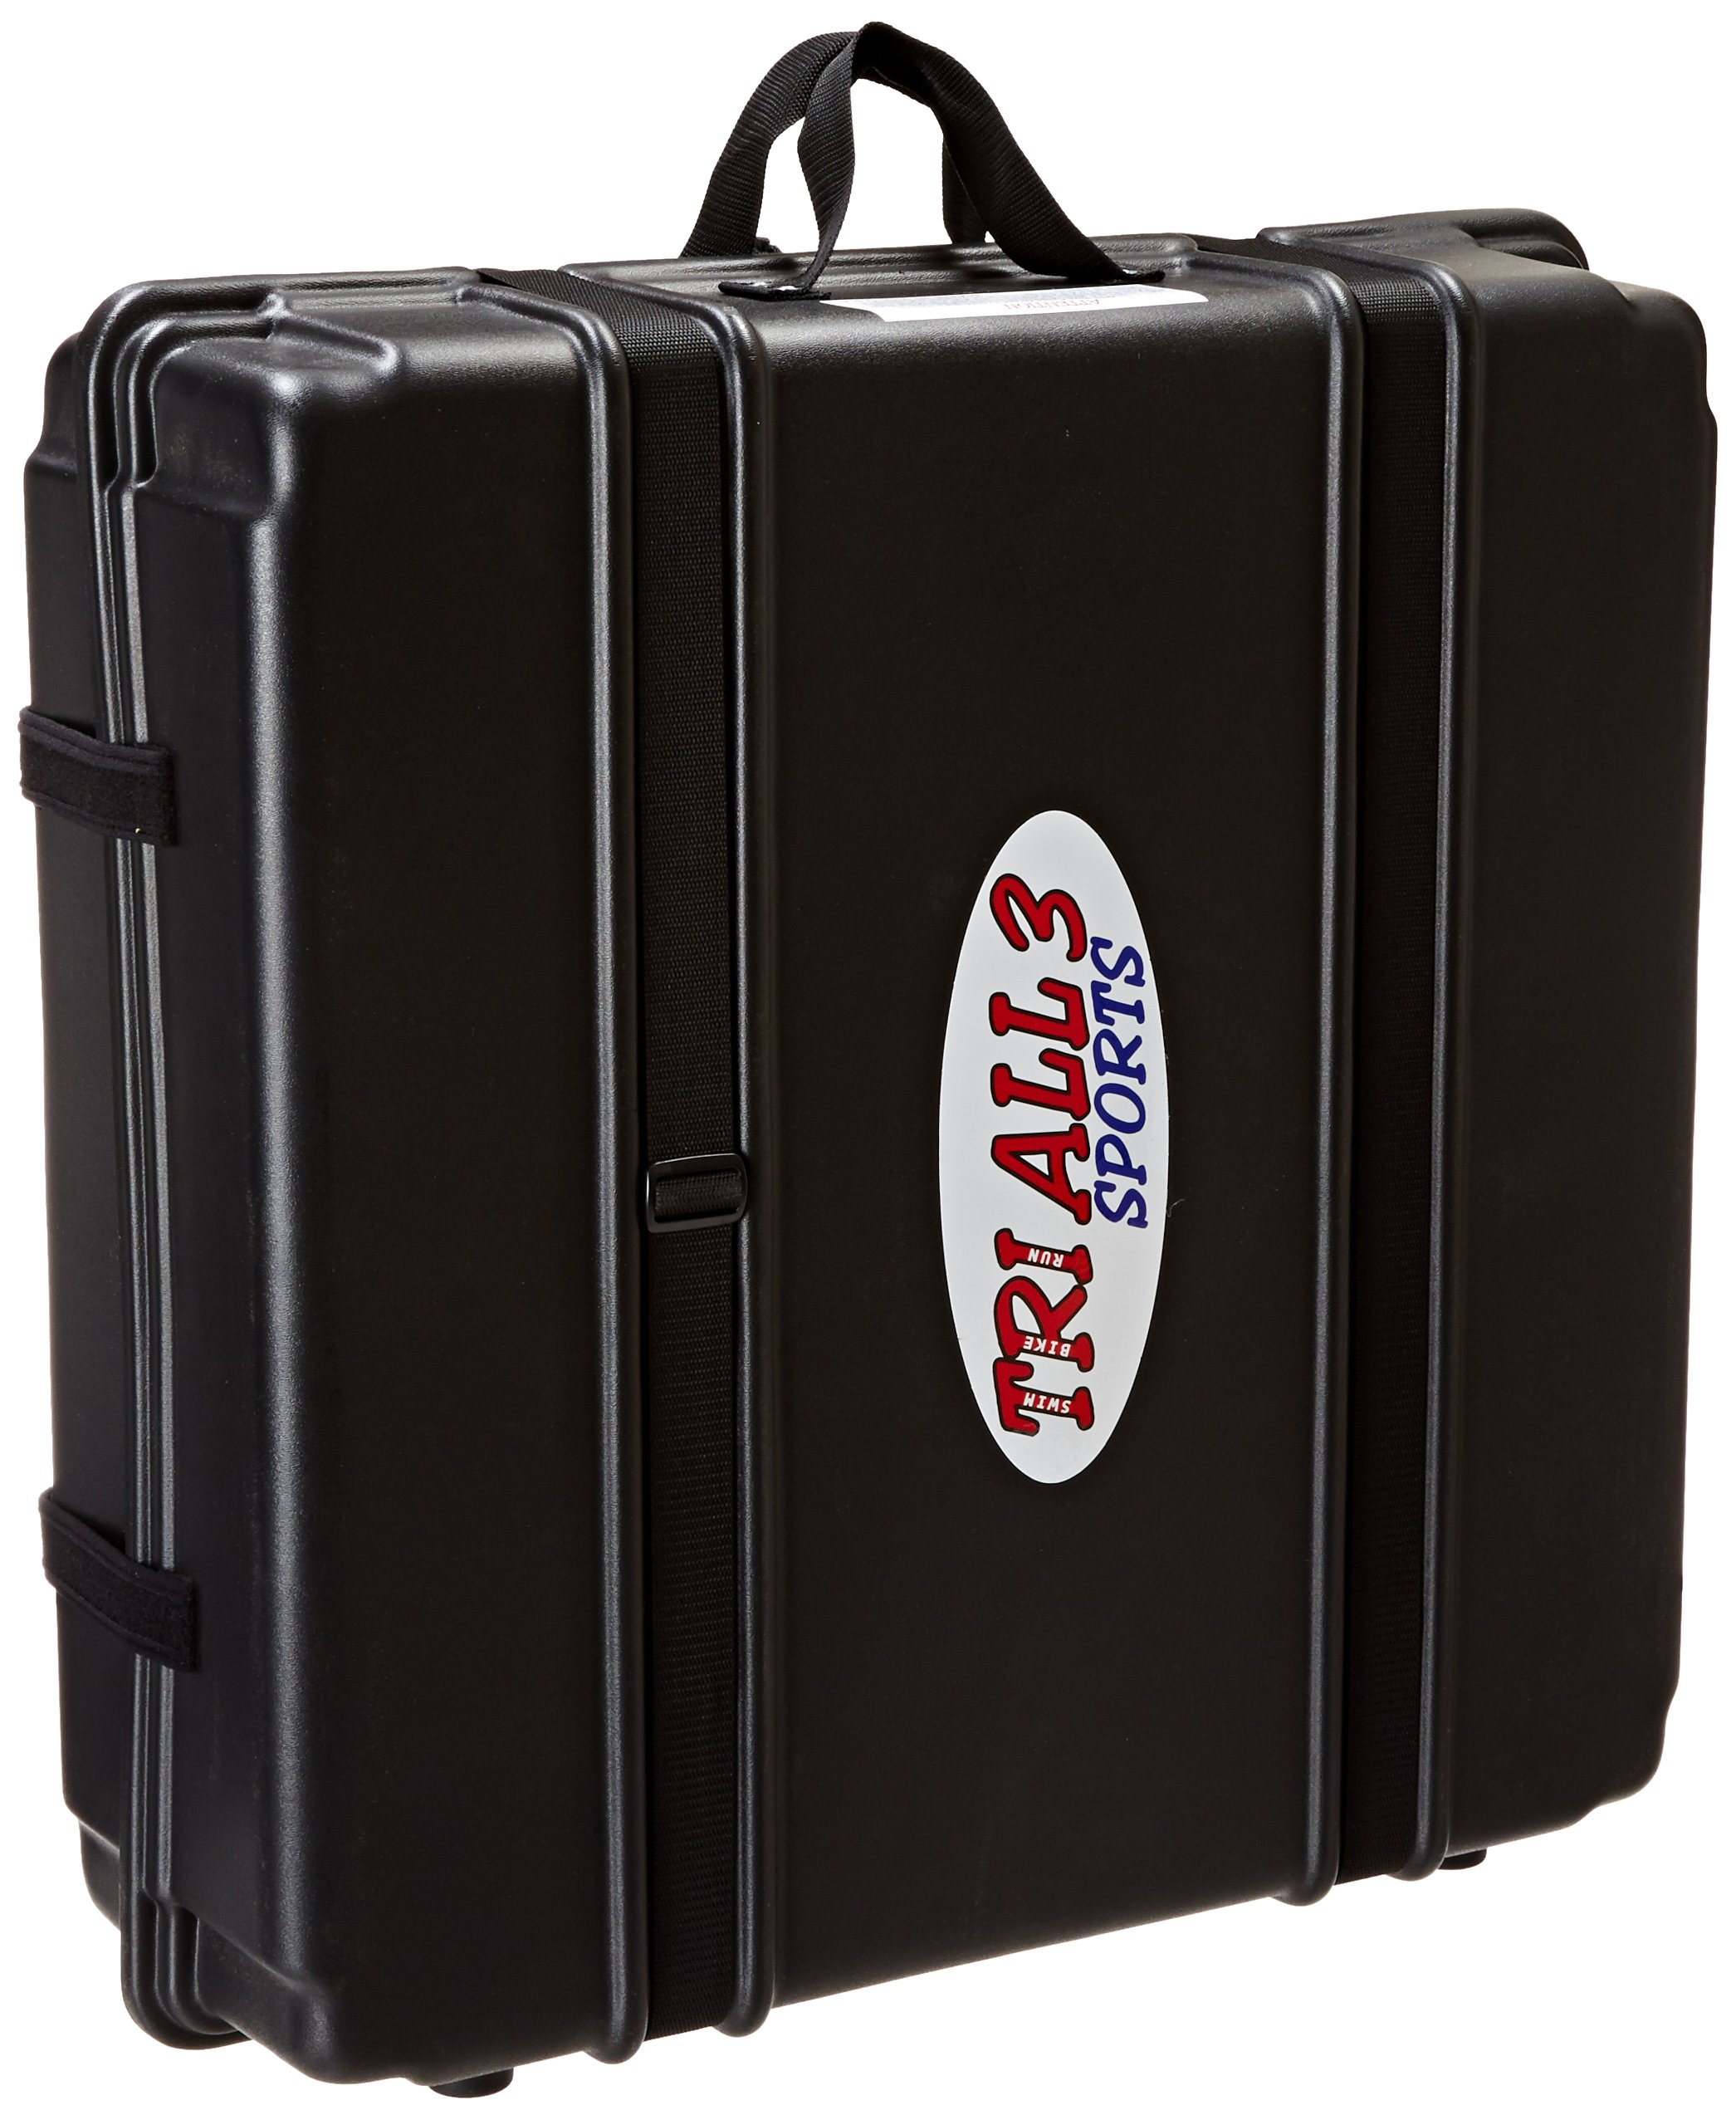 Tri All 3 Sports Clam Shell Wheel Case by Tri All 3 Sports (Image #1)